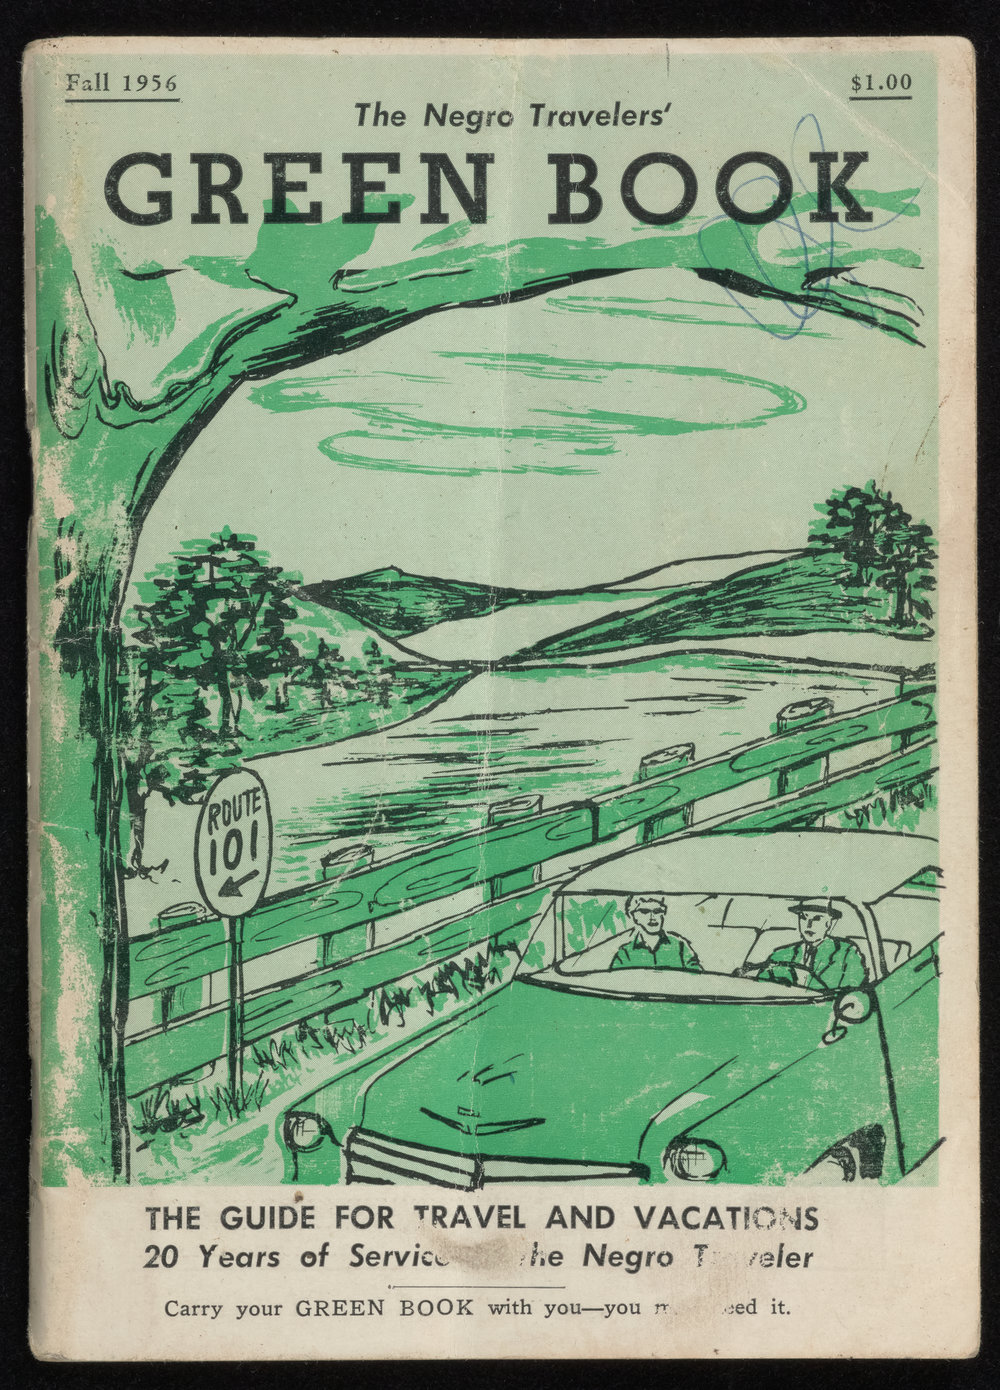 Little Known Black History Fact: The Green Book